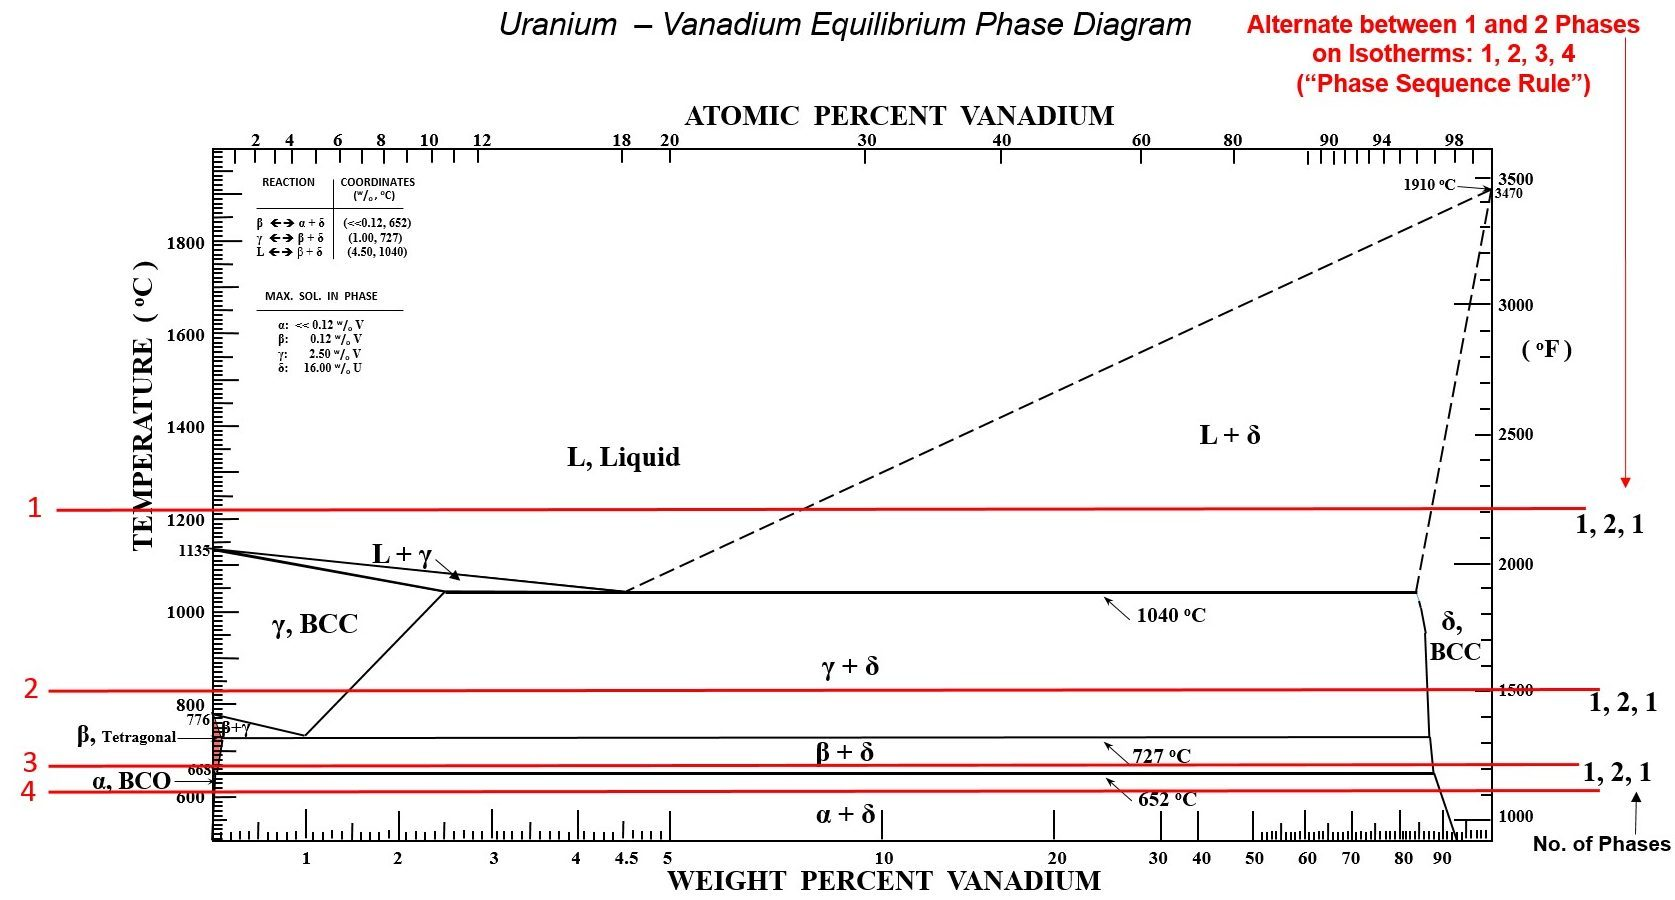 phase diagram for vanadium–uranium system showing the phase sequence rule  for four isotherms  from staker [41]